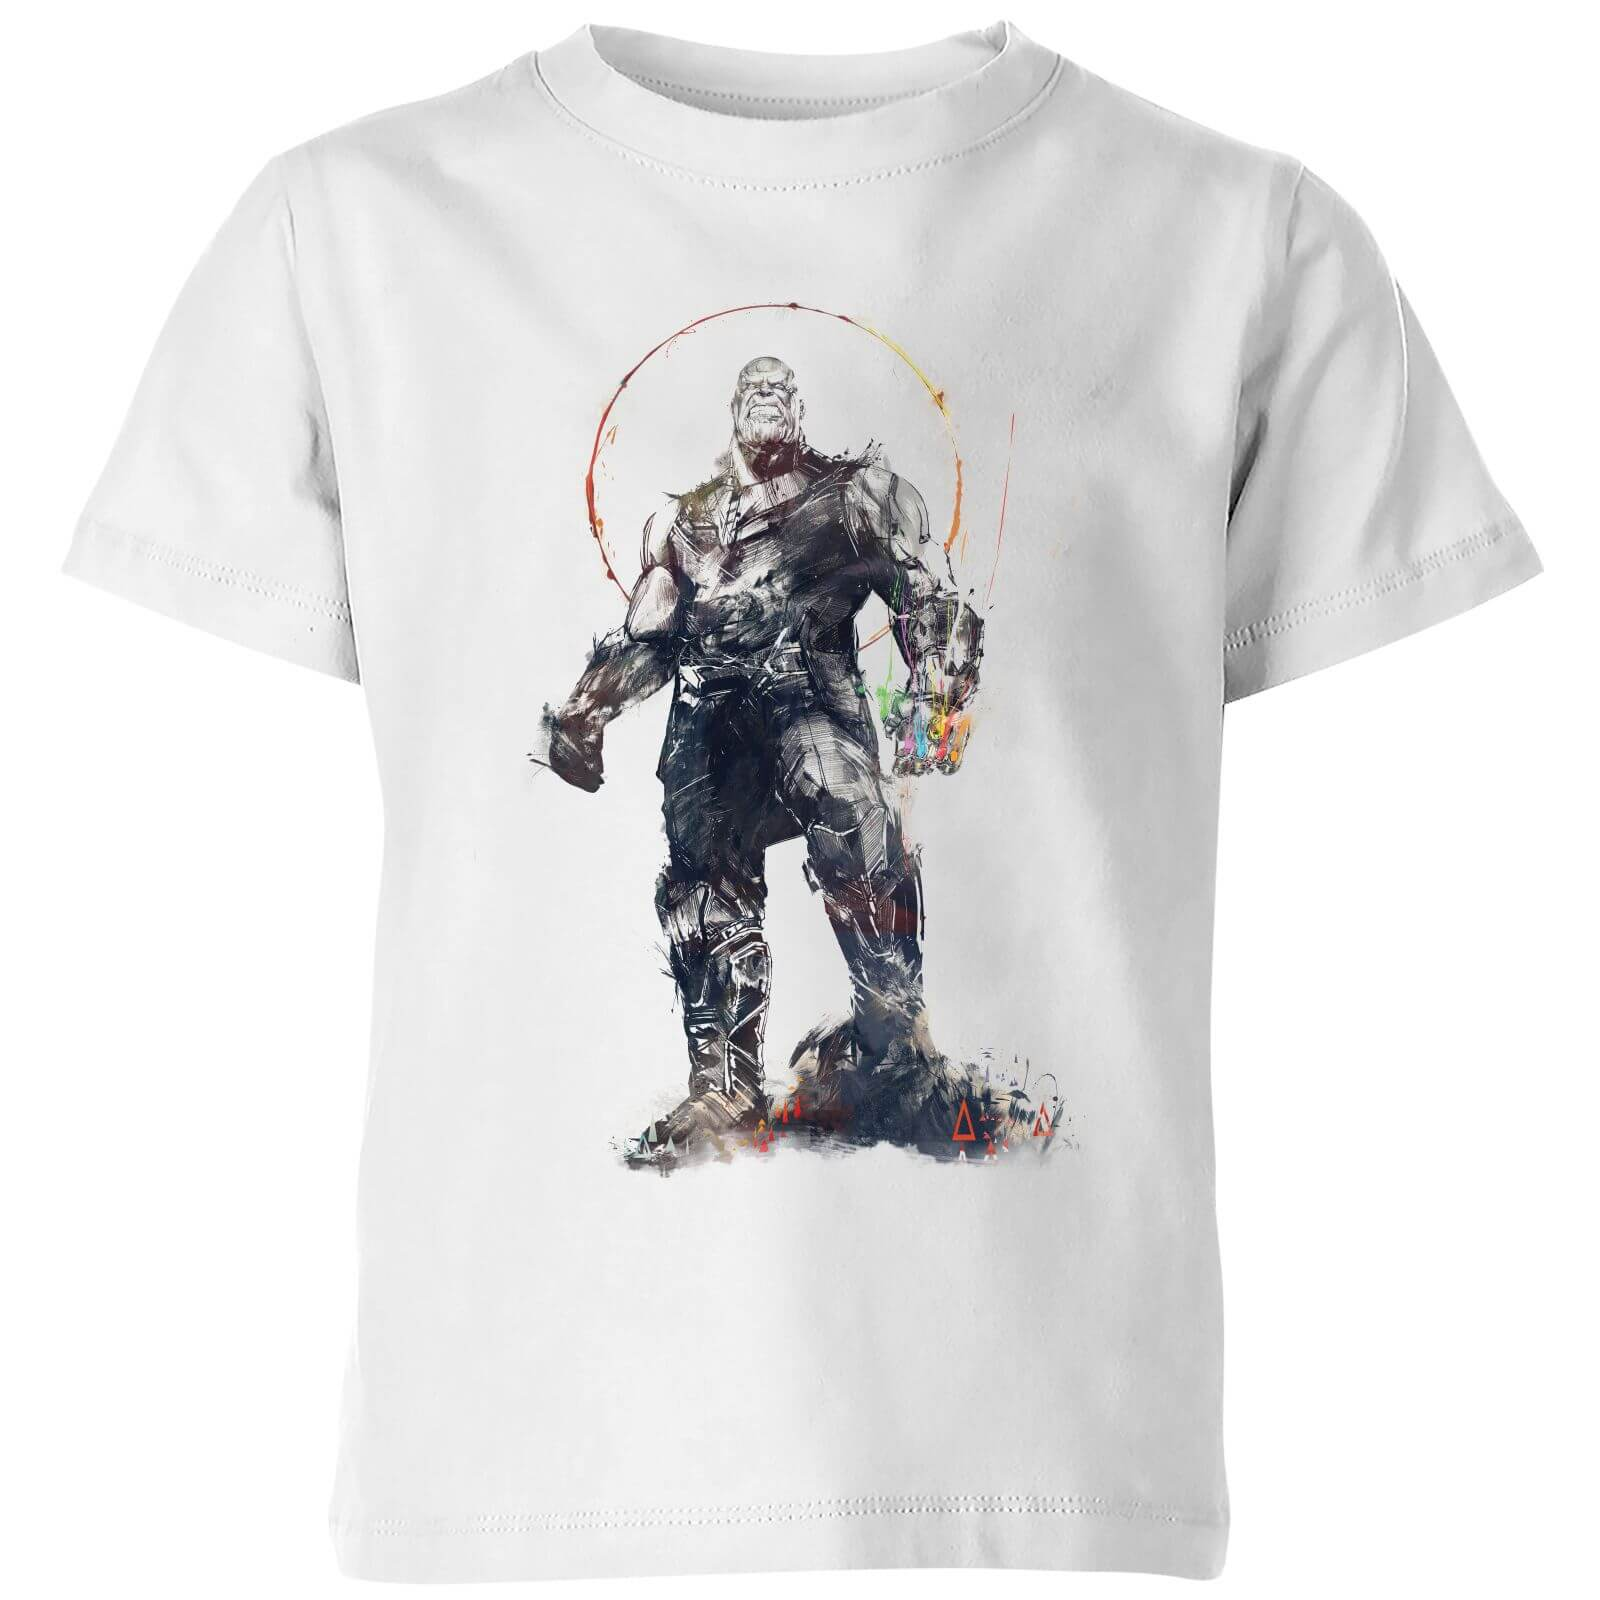 55ae148aa07 Marvel Avengers Infinity War Thanos Sketch Kids  T-Shirt - White Clothing